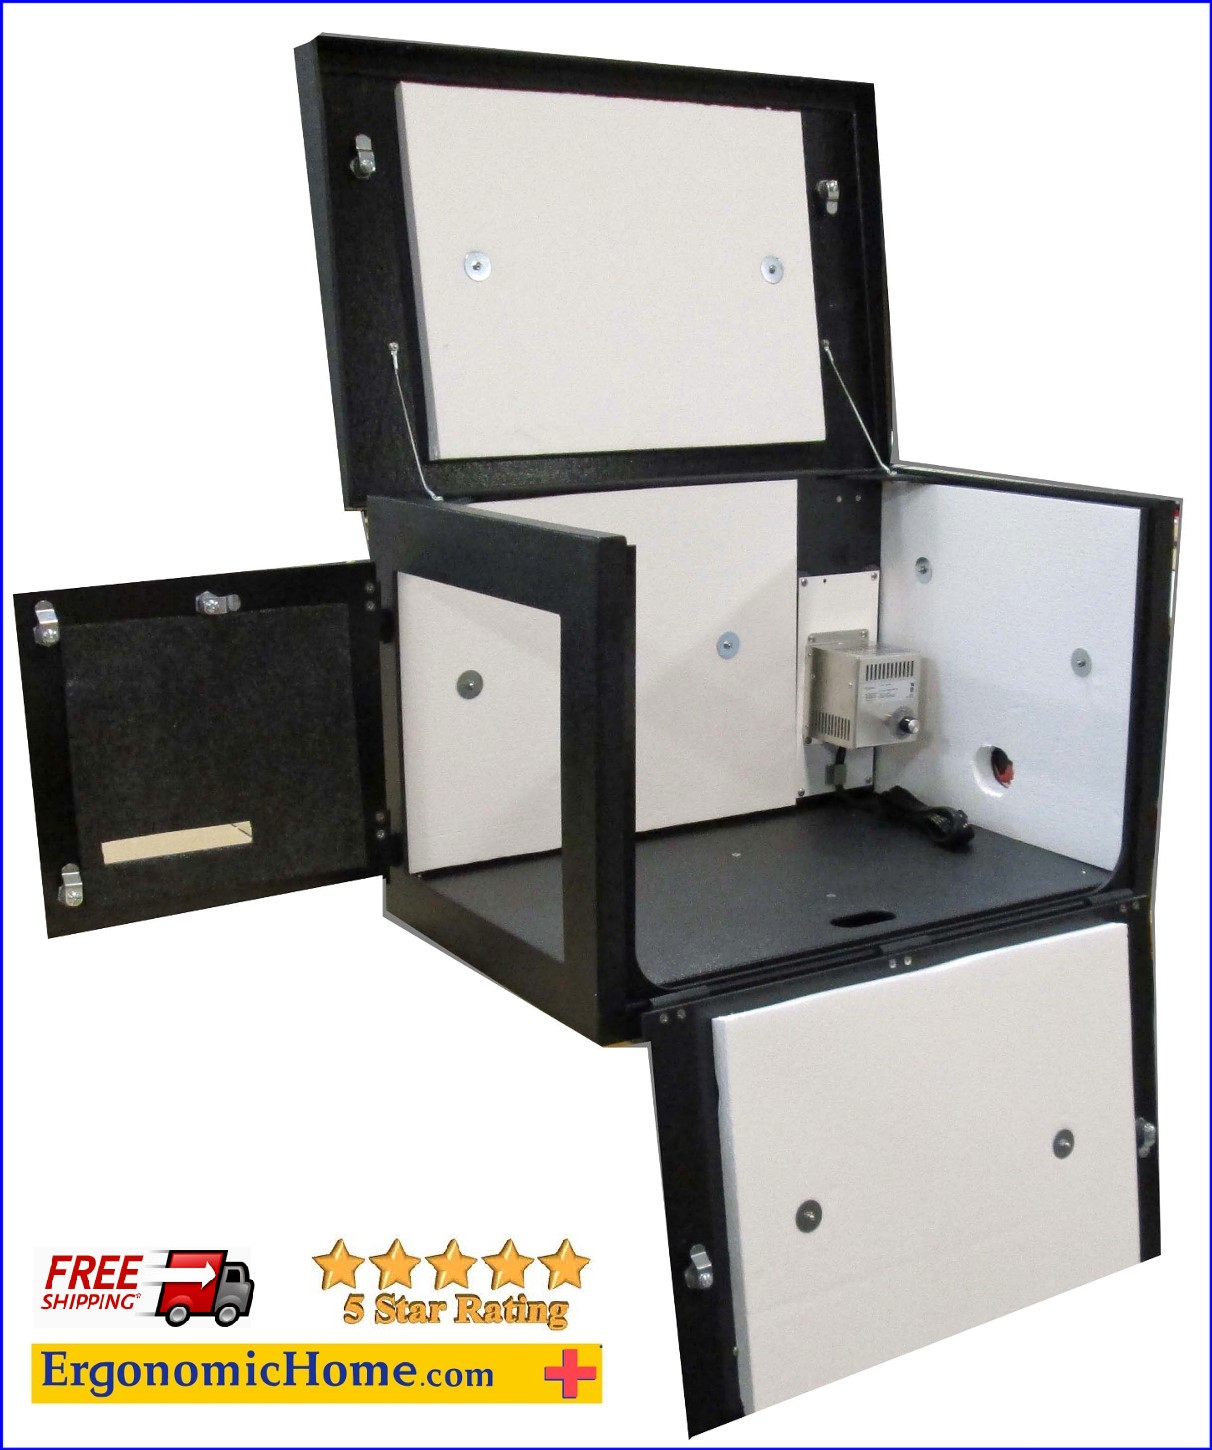 Heated Printer Enclosure For Zebra ZT-420 And ZT-420R. Read More Below...